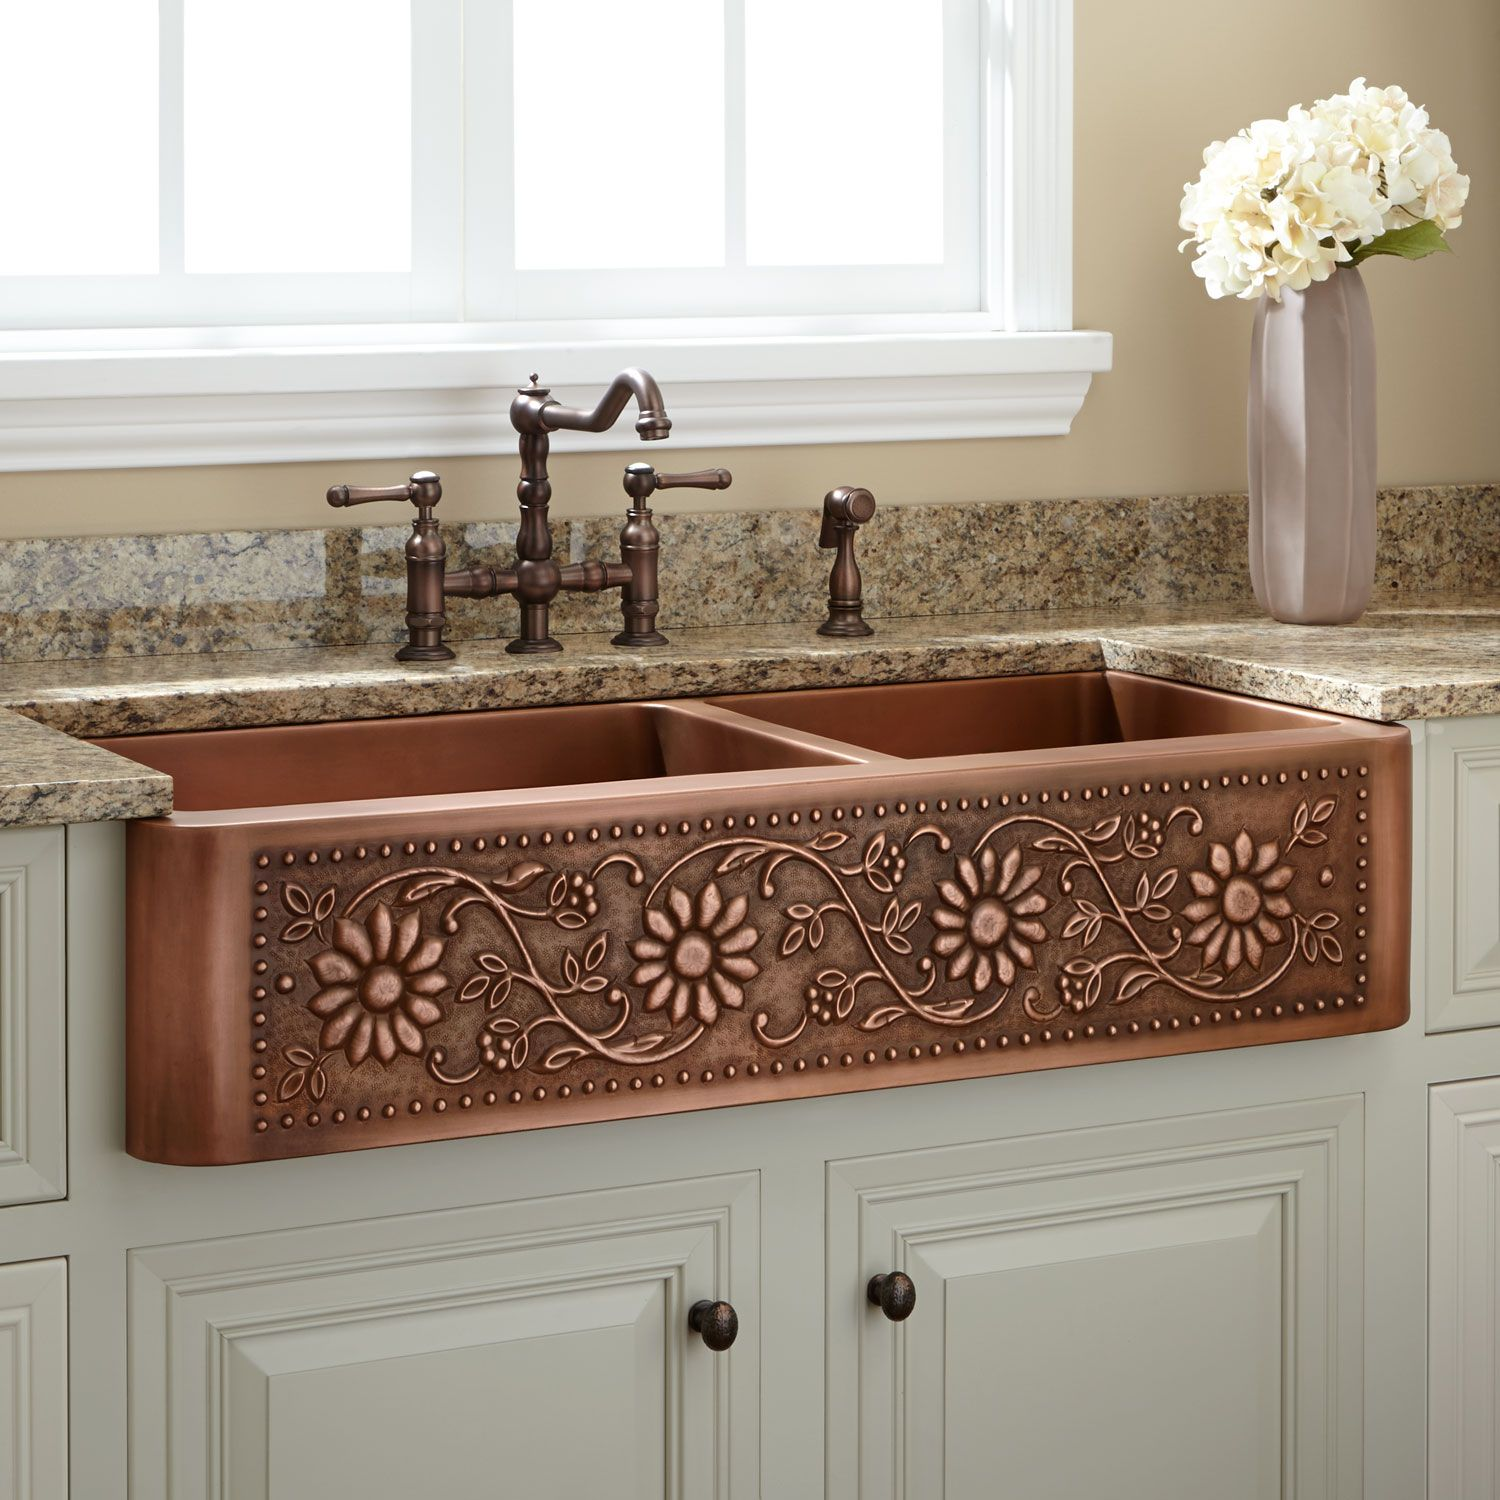 42 inch kitchen sink for sale farmhouse signature hardware sunflower 60 40 offset double bowl copper